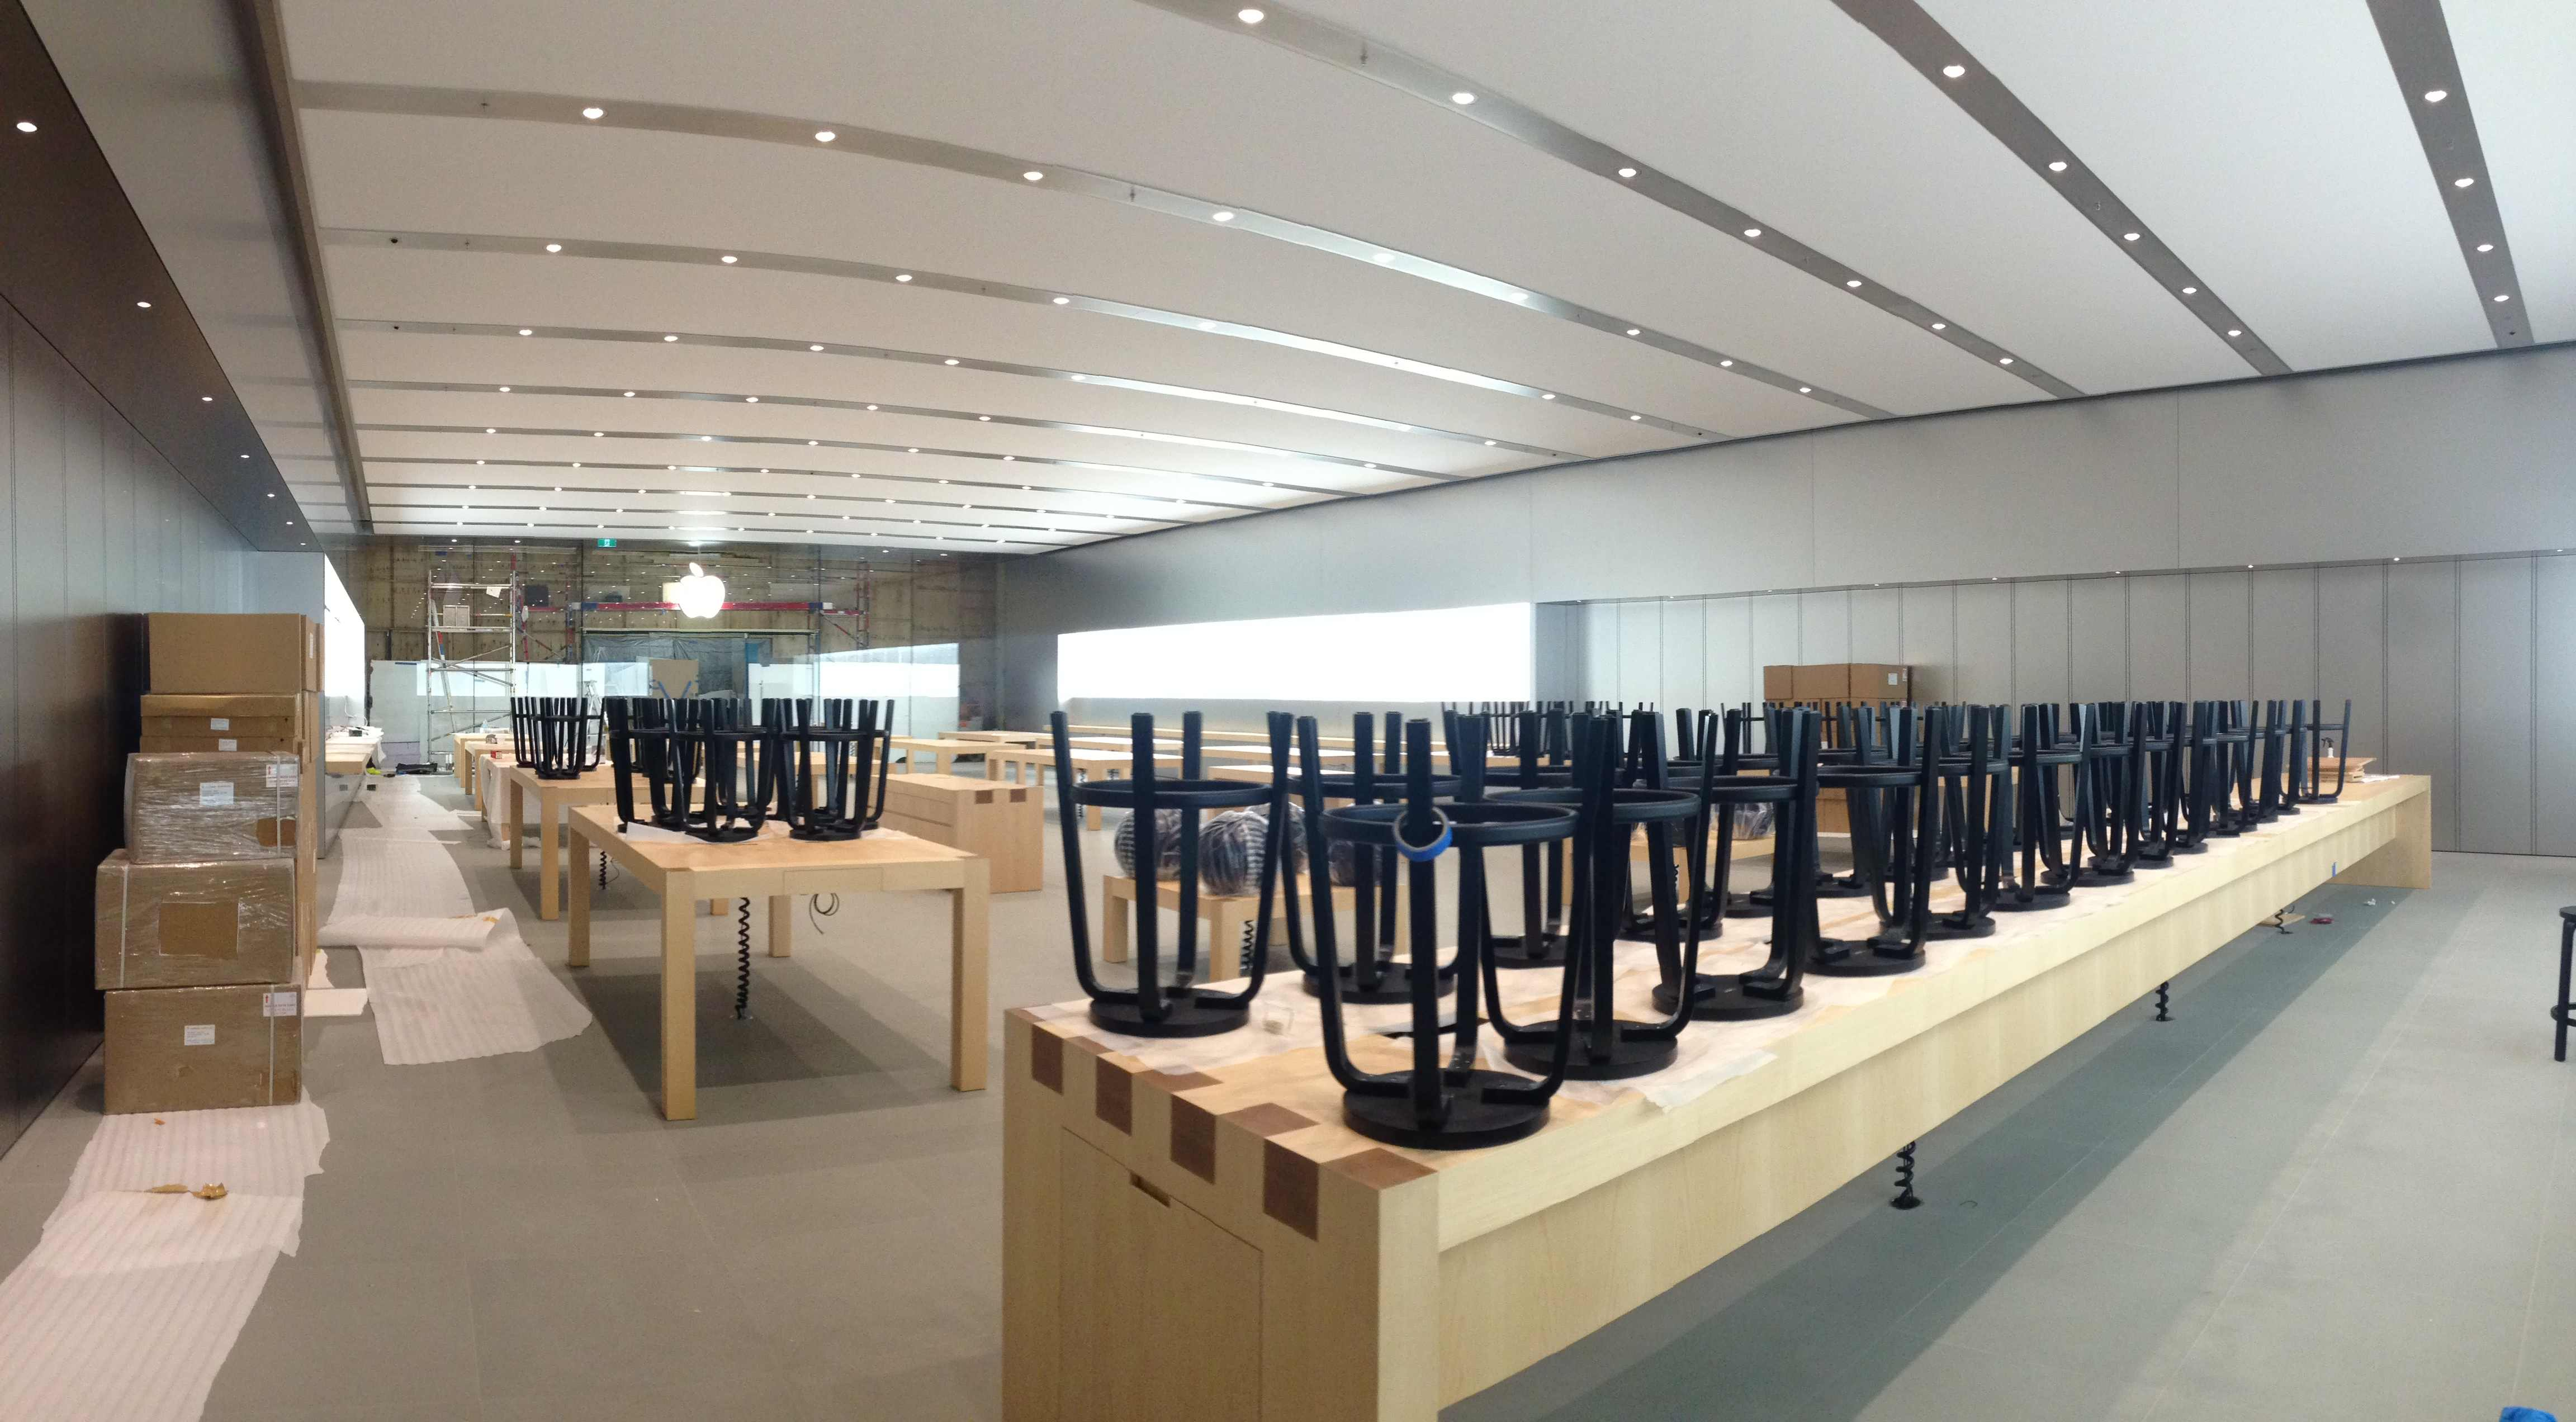 Tv Fix Adelaide Adelaide Australia Apple Store Opens Saturday Here 39s A